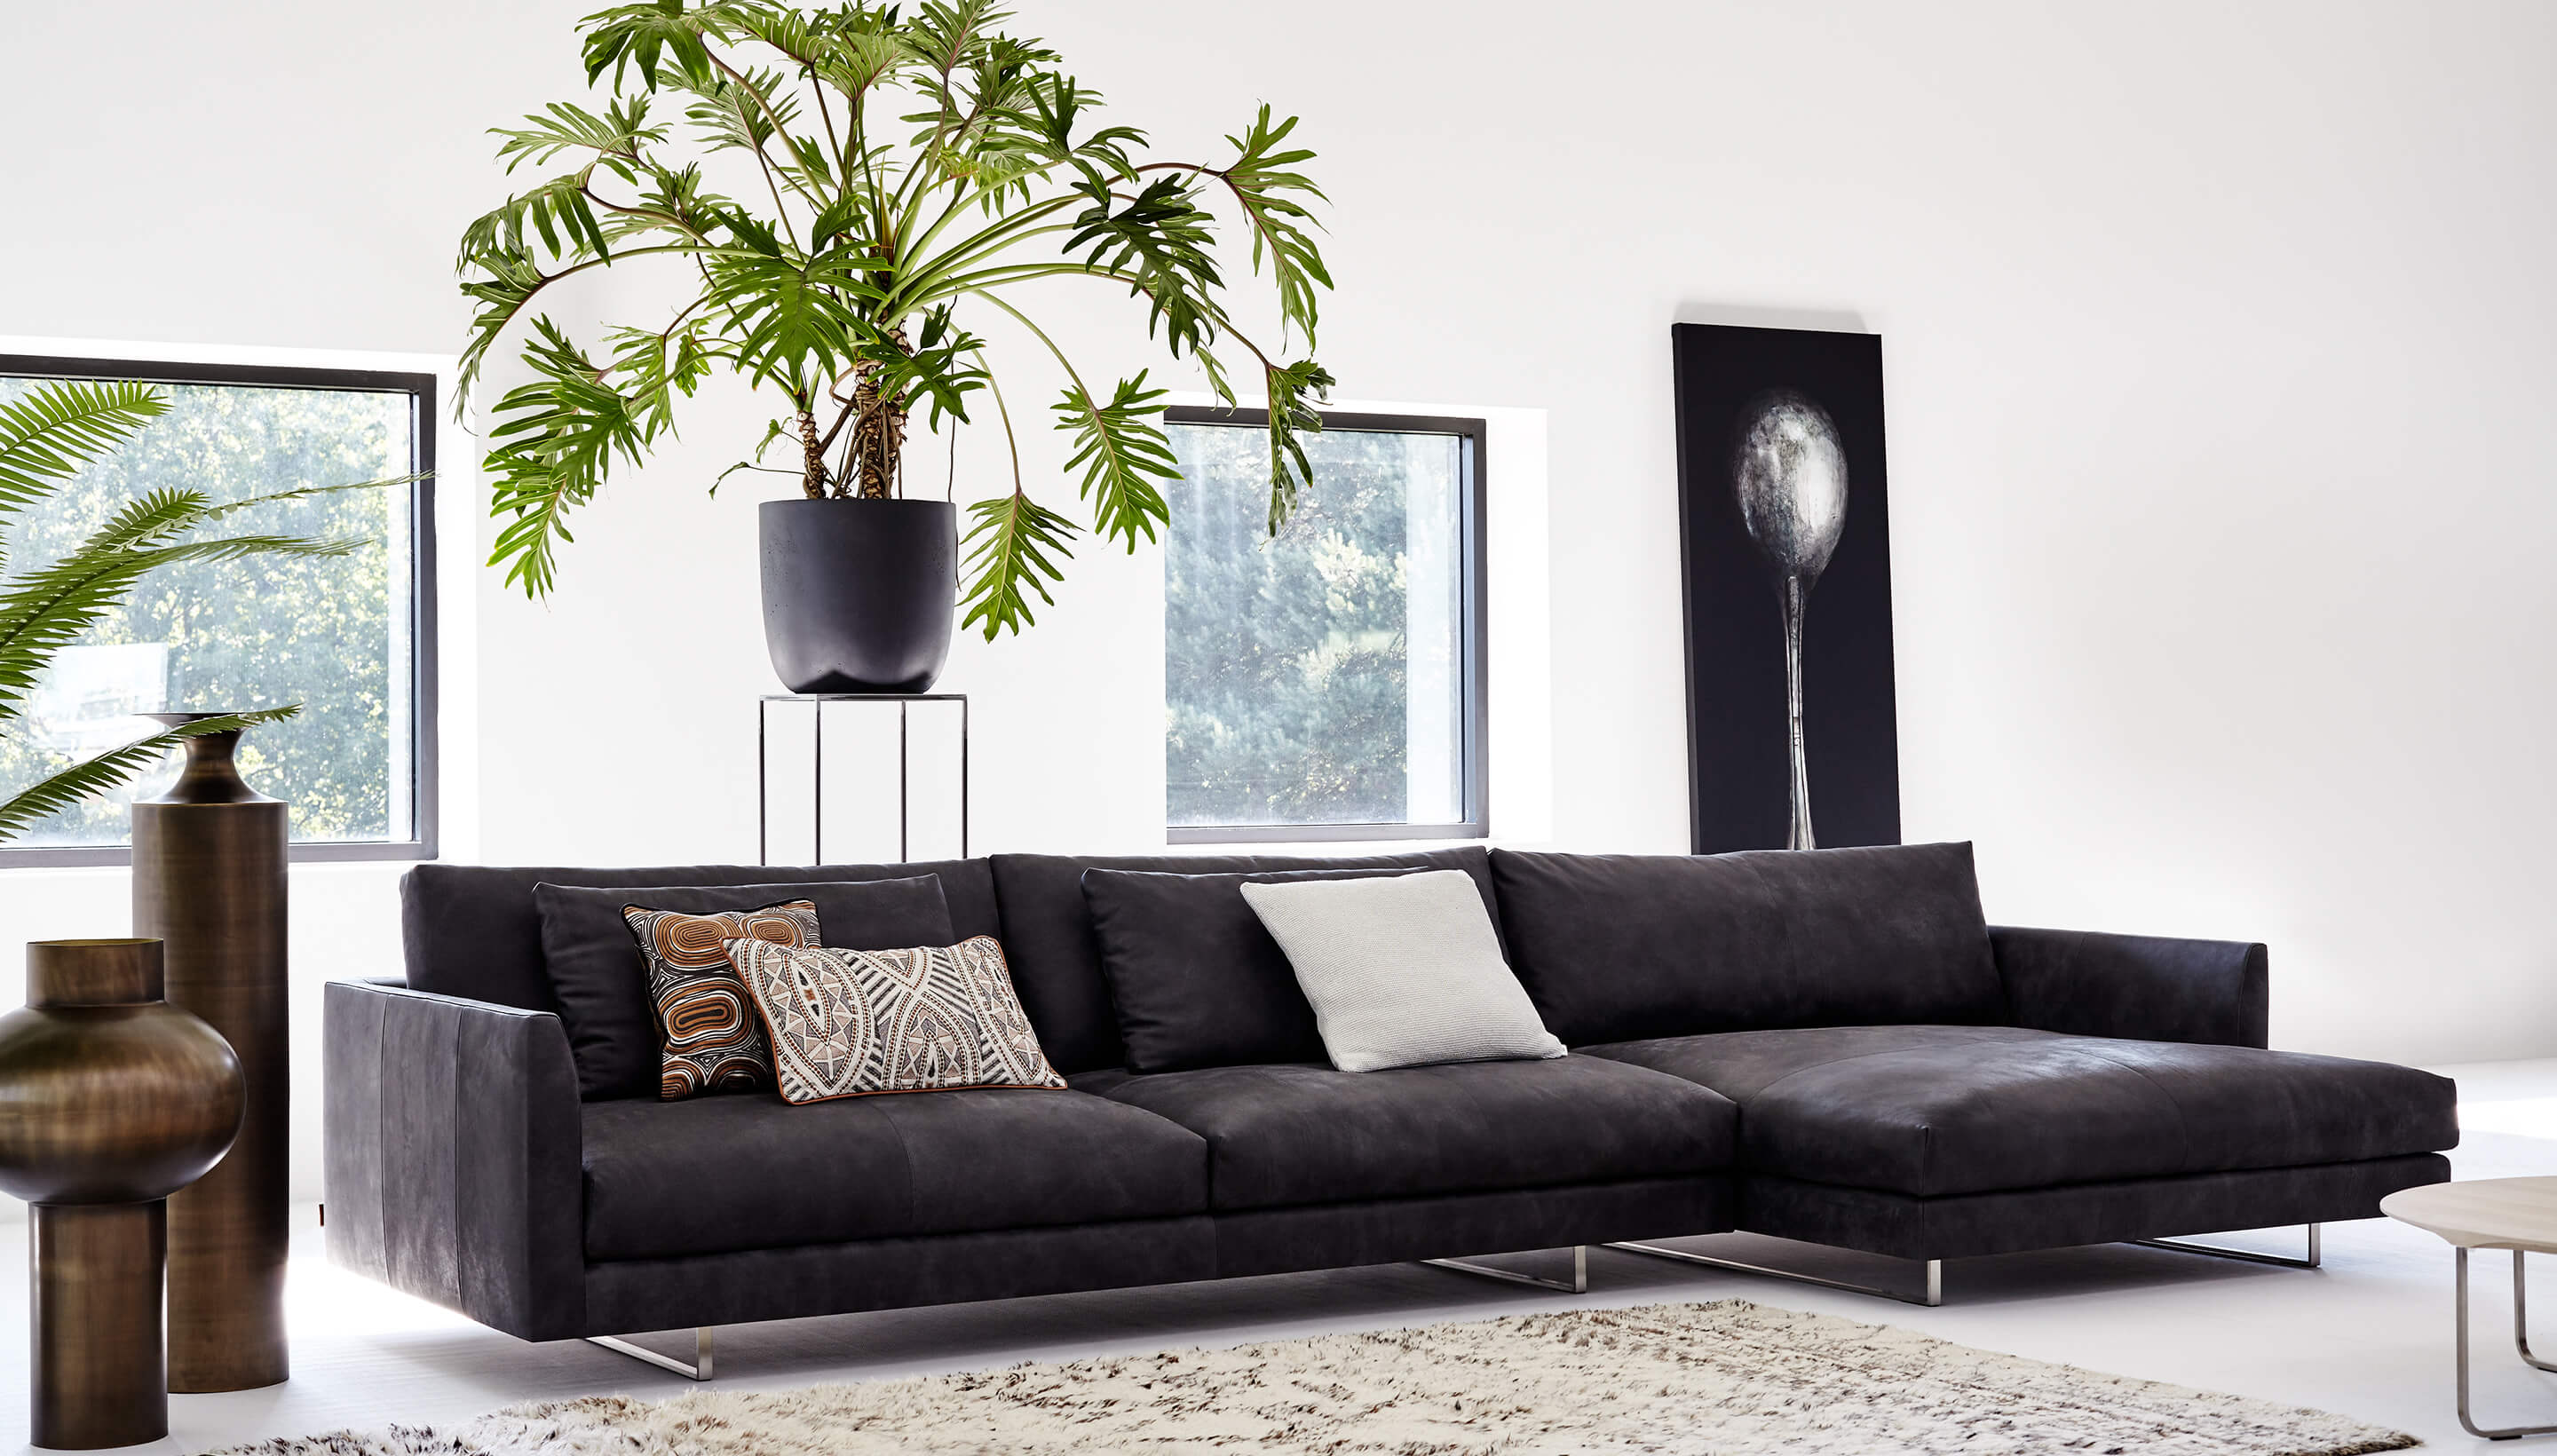 Montis Axel Xl S Sofa 230